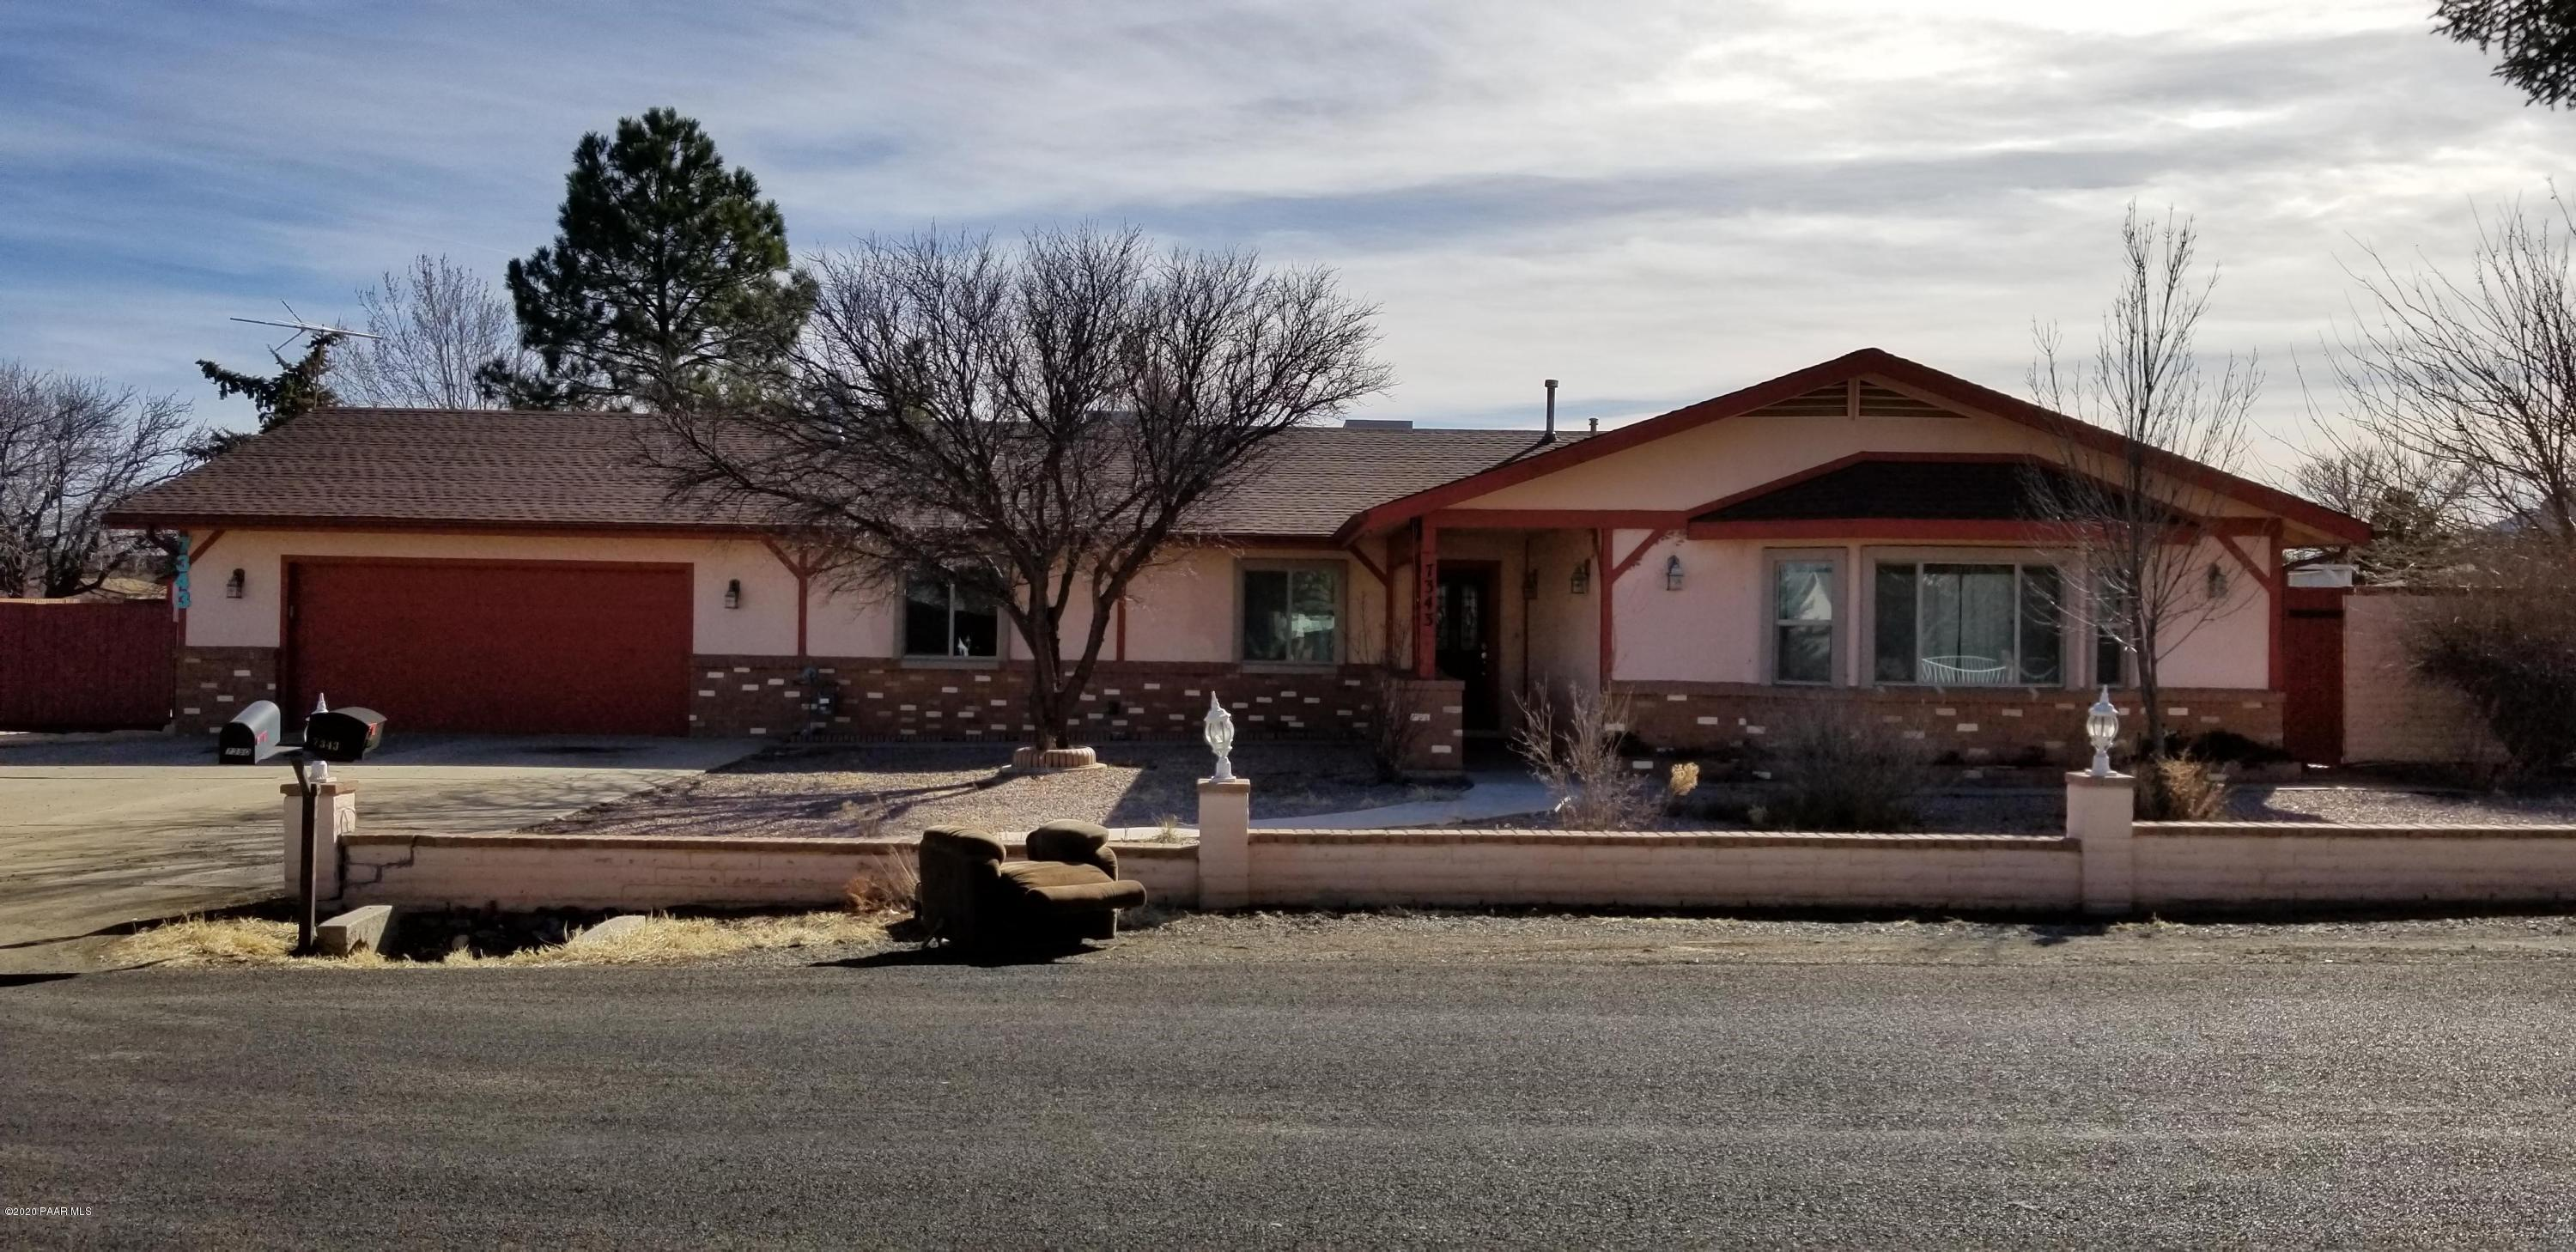 One of Prescott Valley 3 Bedroom Homes for Sale at 7343 E Lobo Way